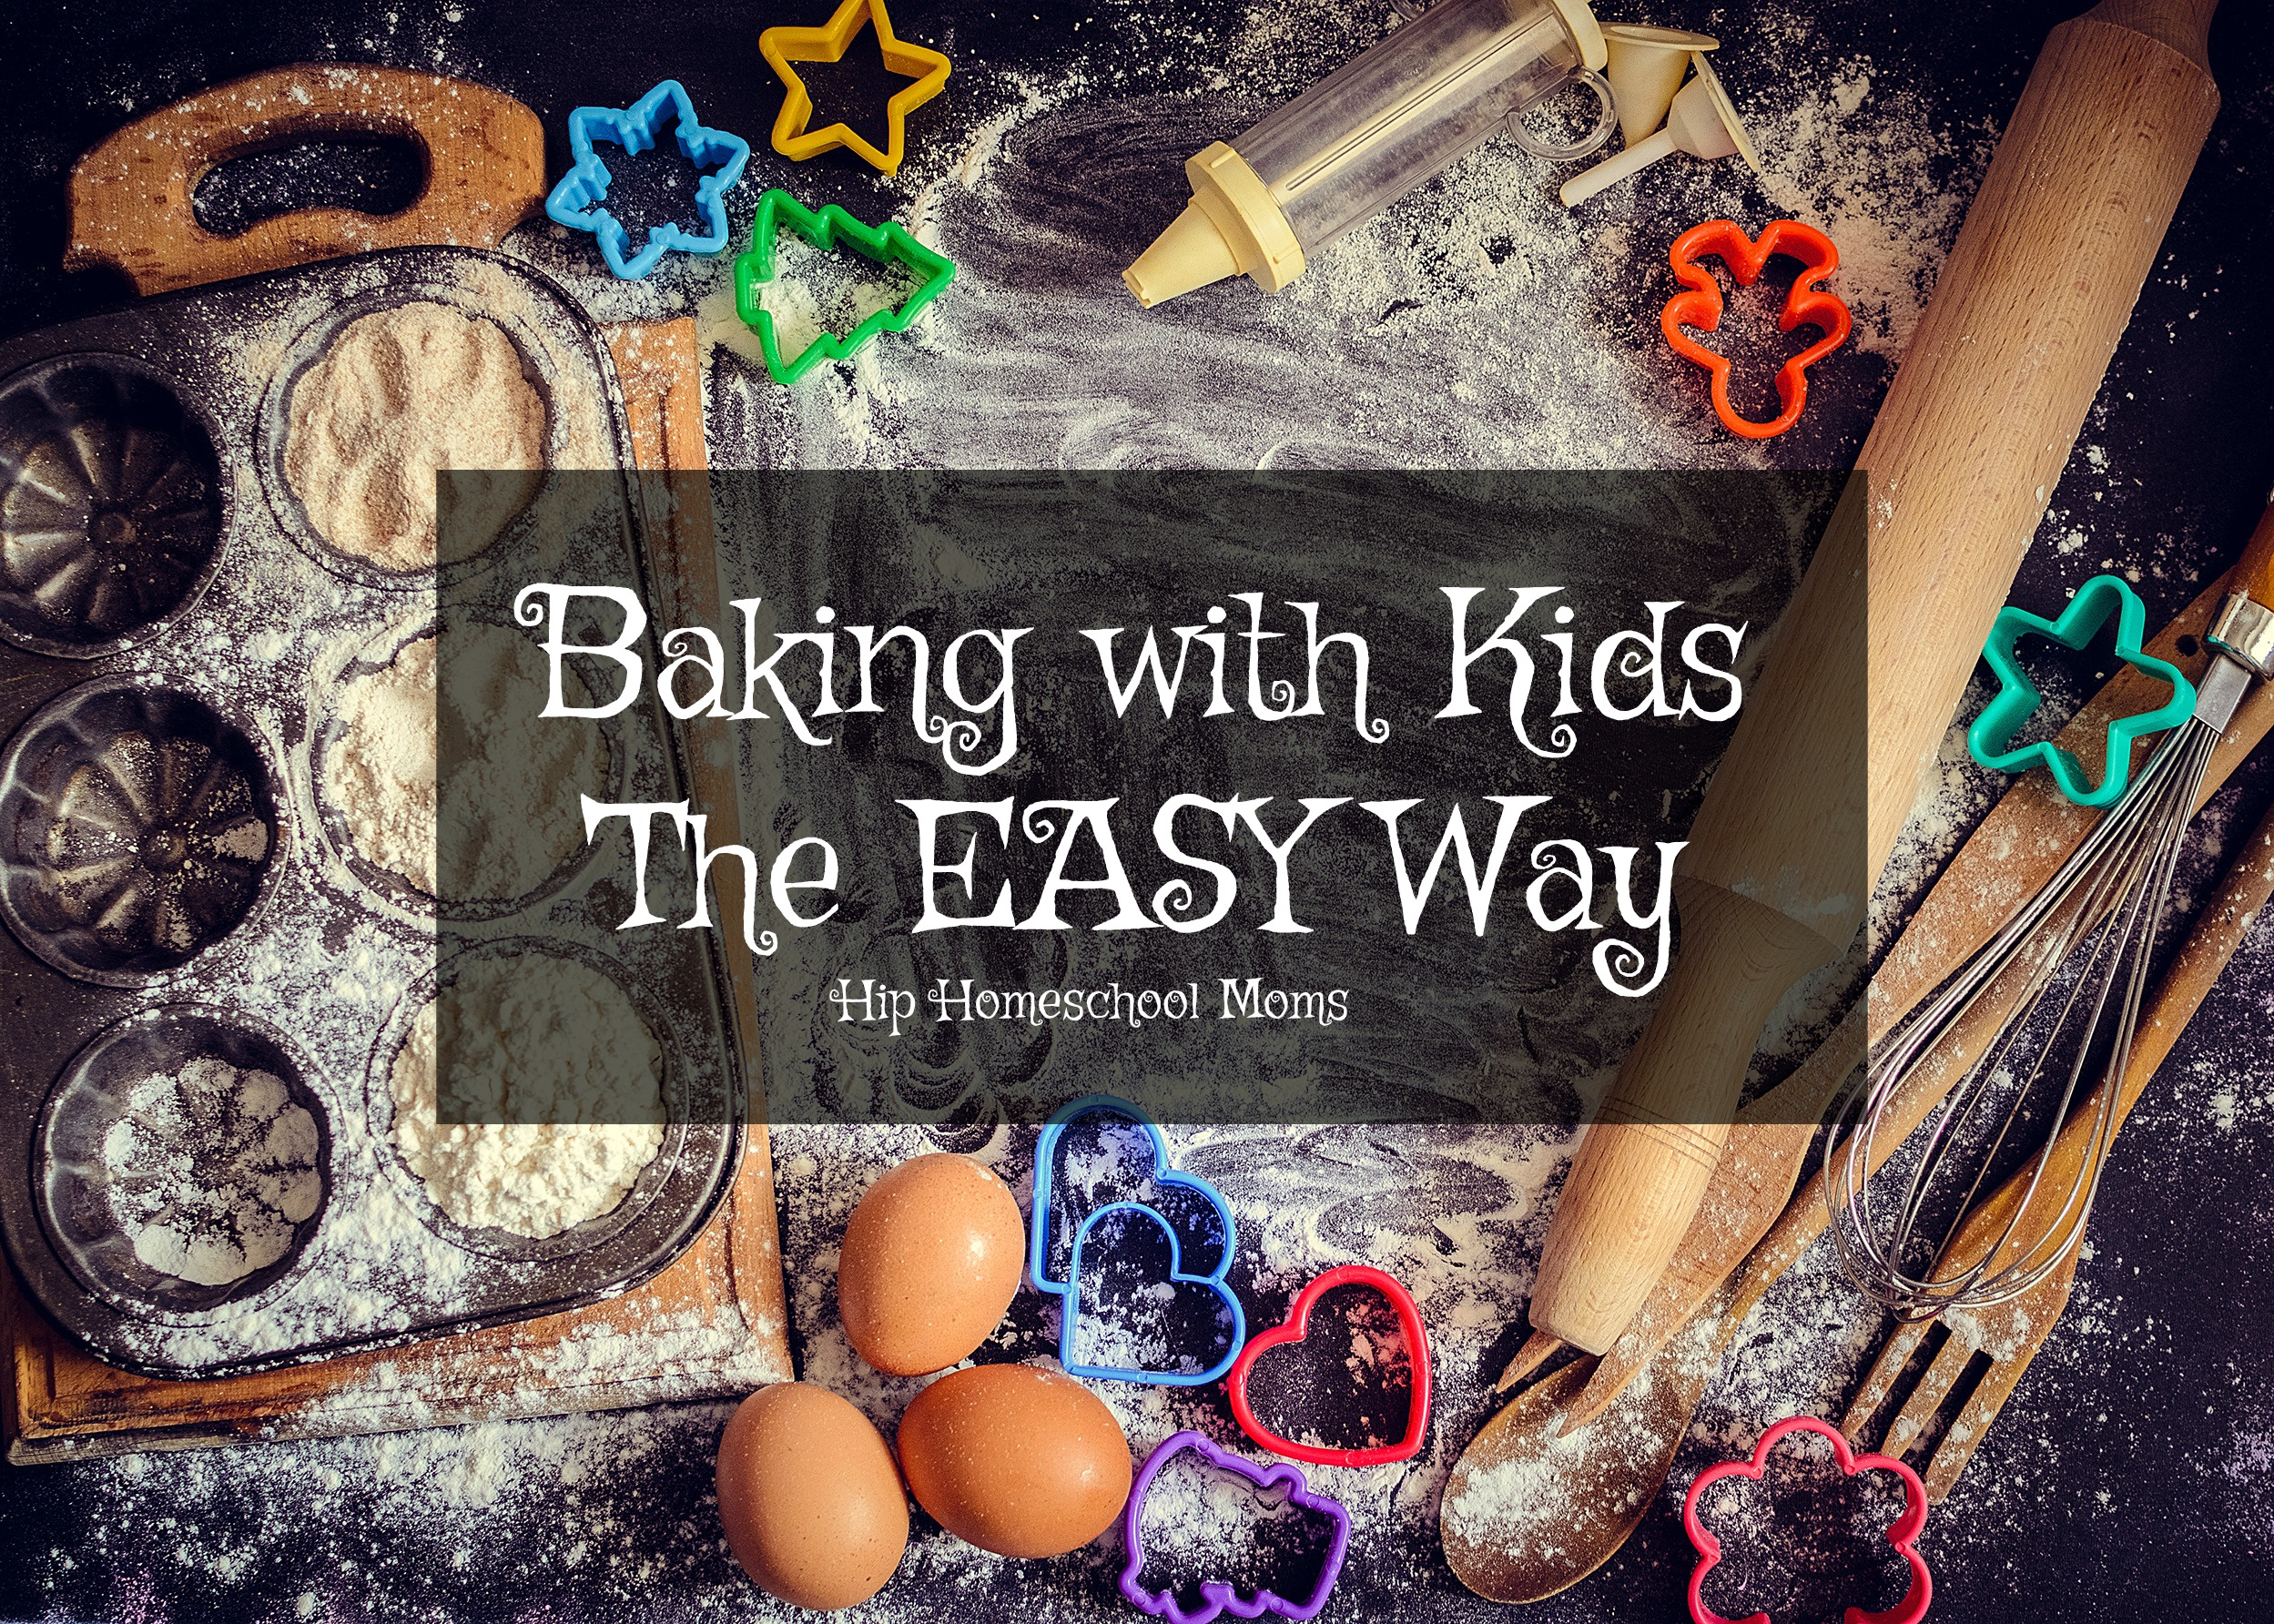 Baking with your kids can be fun! These tips tell you how.